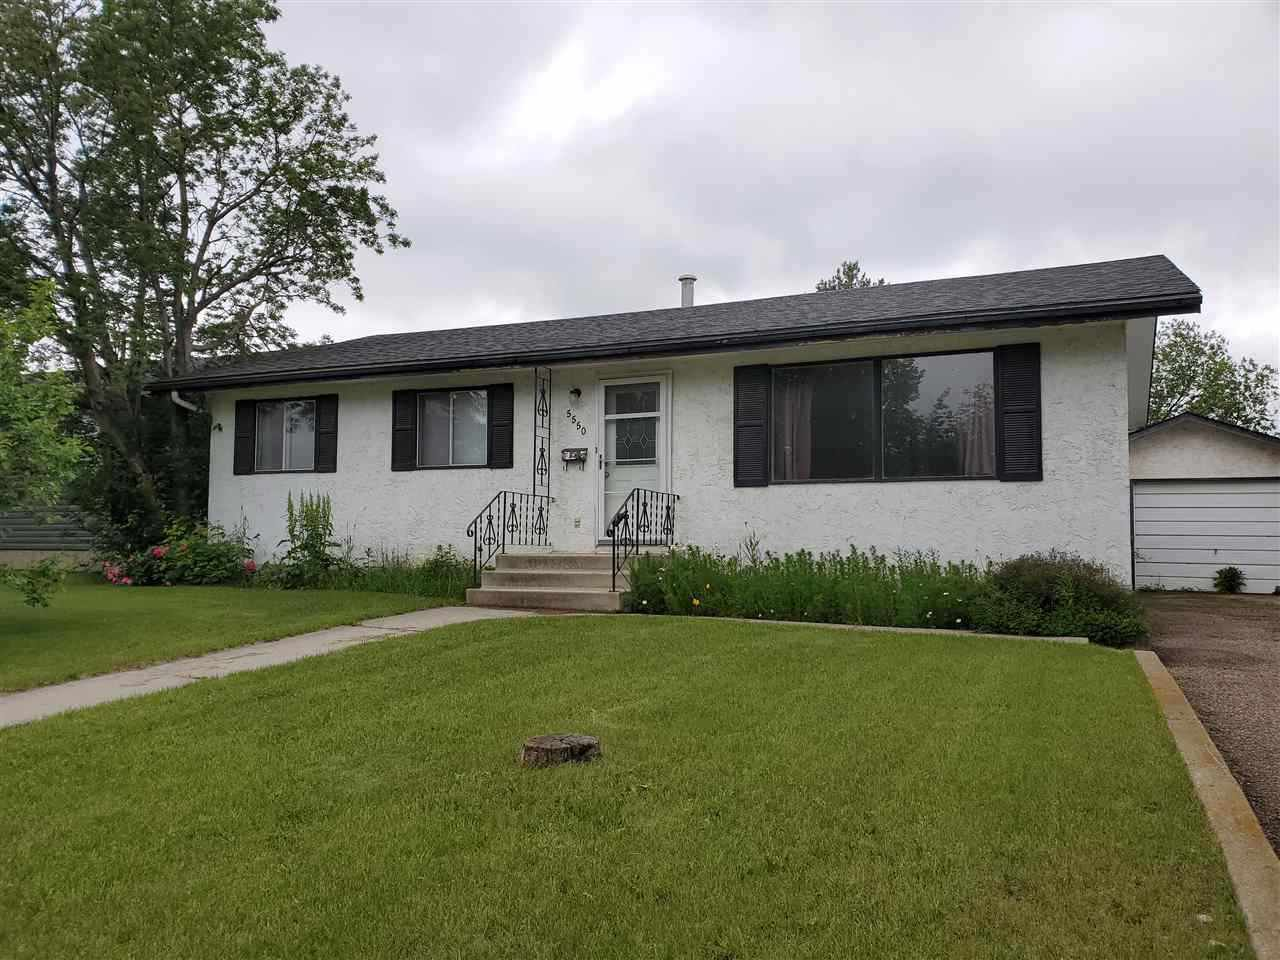 Main Photo: 5550 55A Street: Wetaskiwin House for sale : MLS®# E4170294